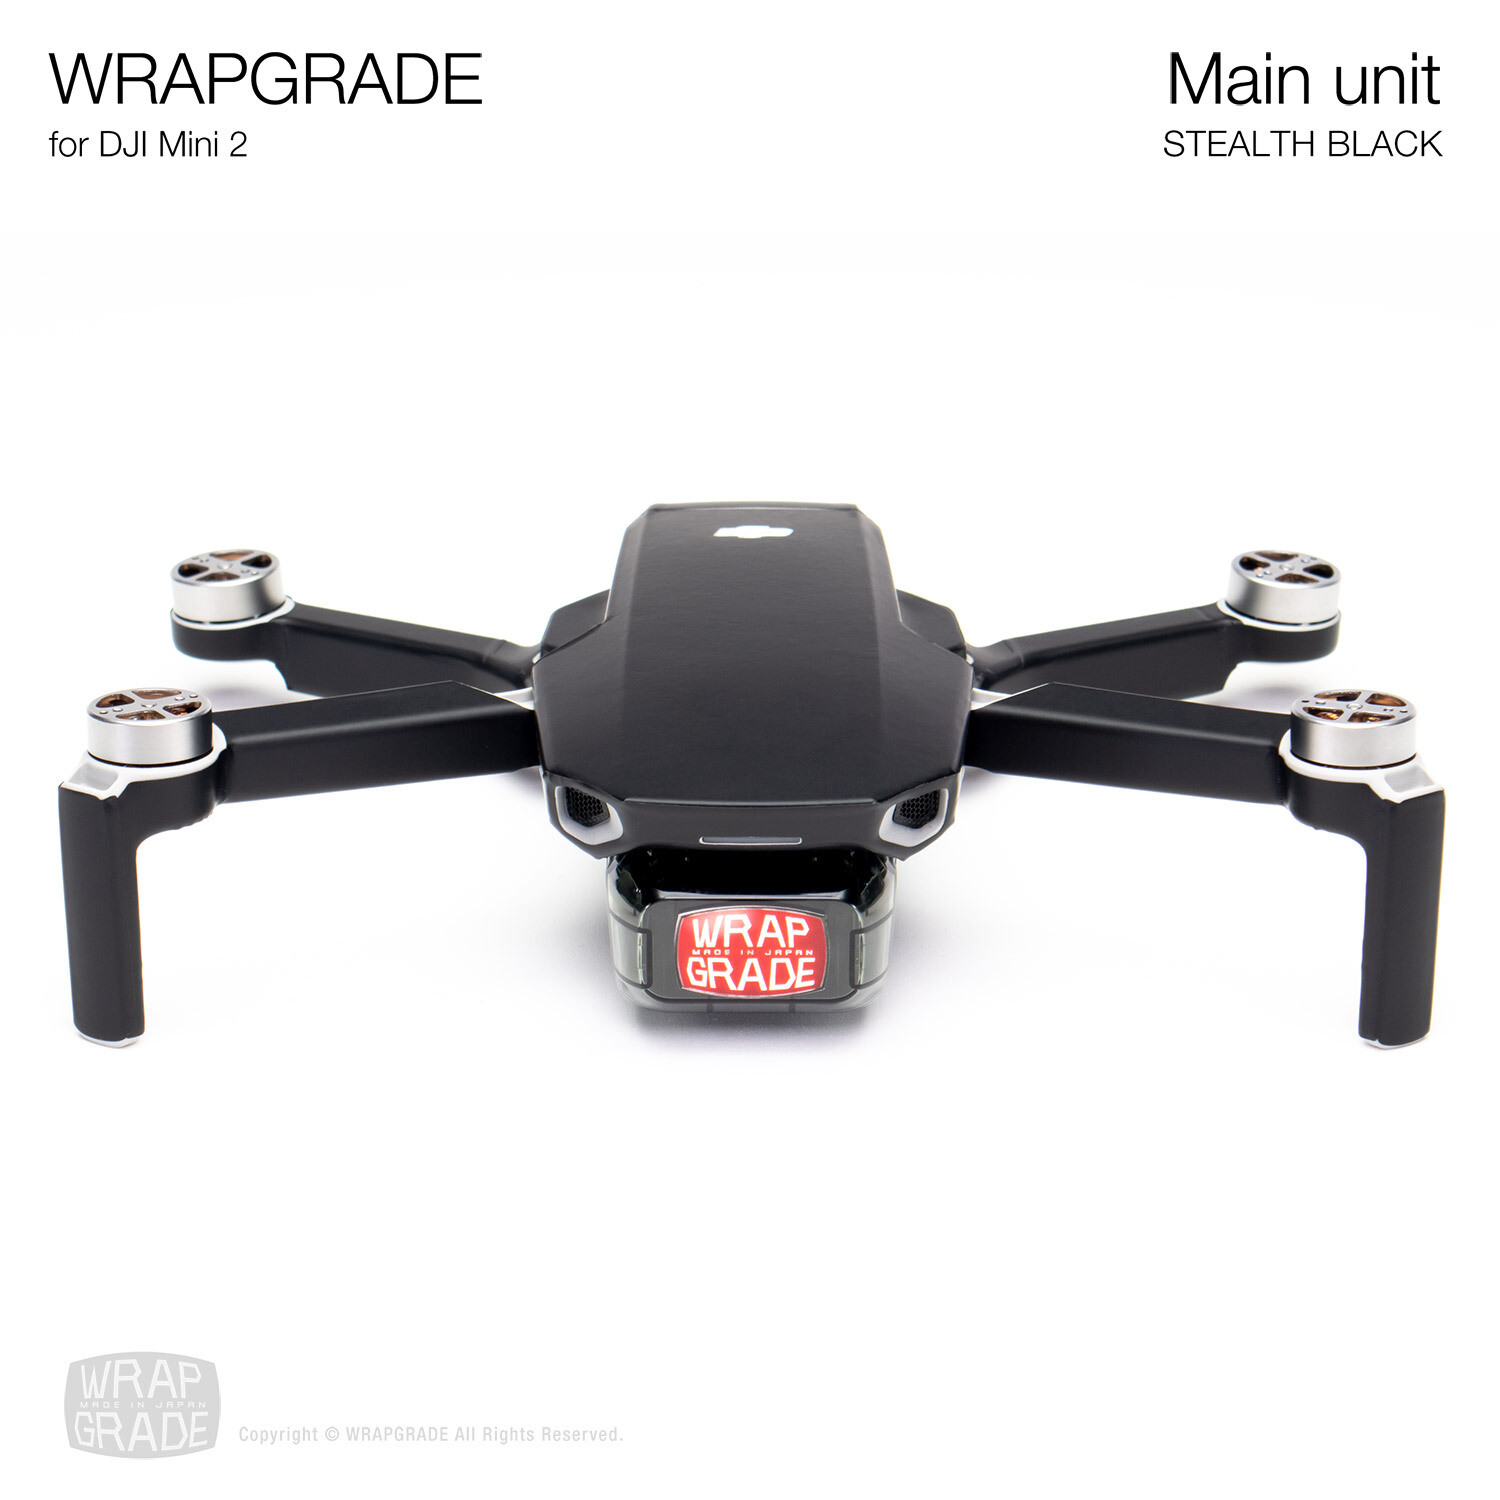 Wrapgrade Poly Skin for DJI Mini 2 | Main Unit (STEALTH BLACK)